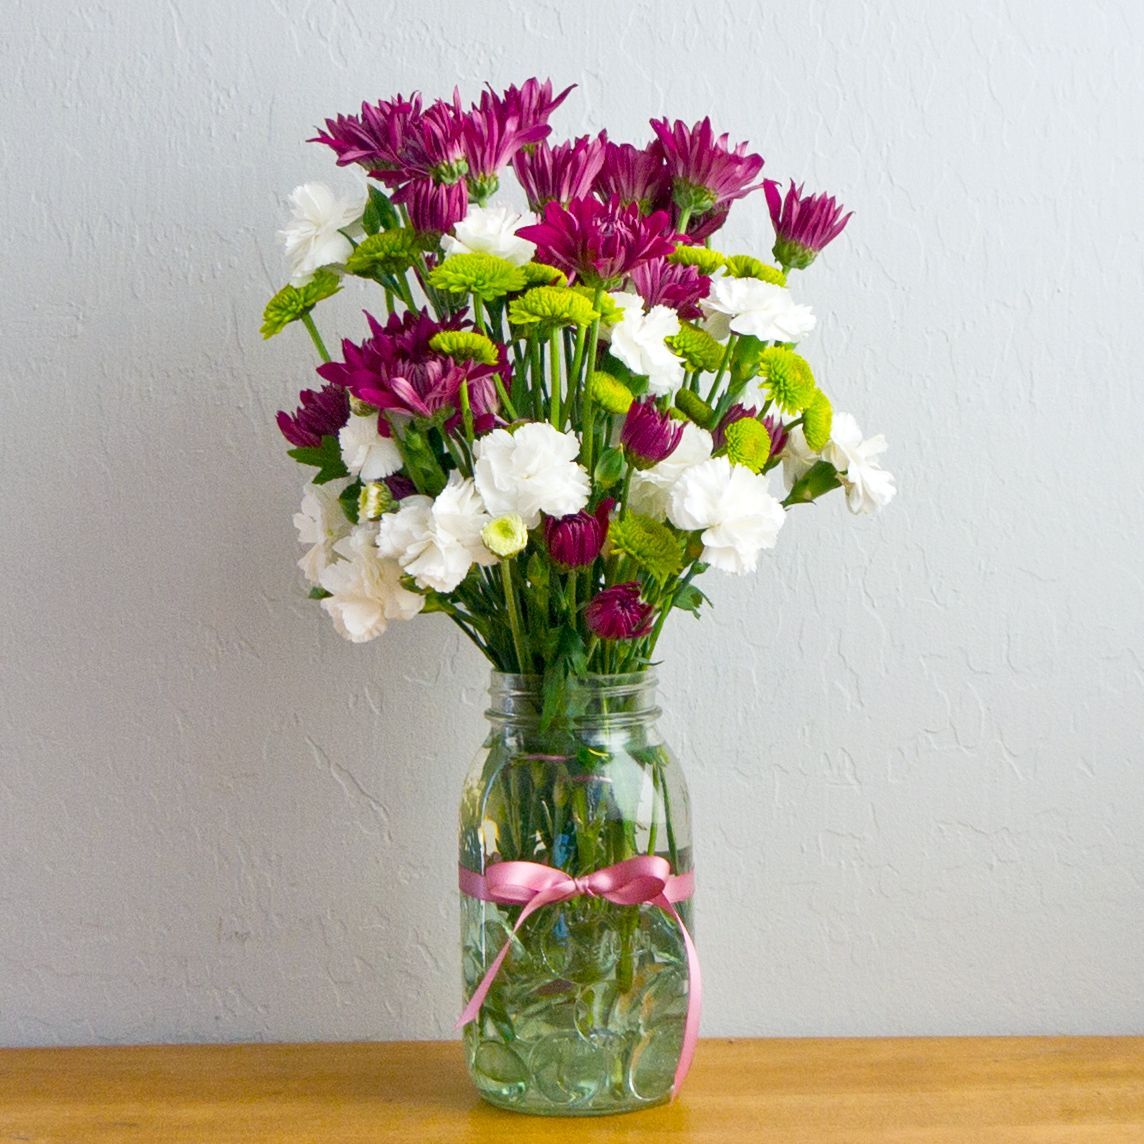 Transform flowers from the pharmacy into a stunning arrangement